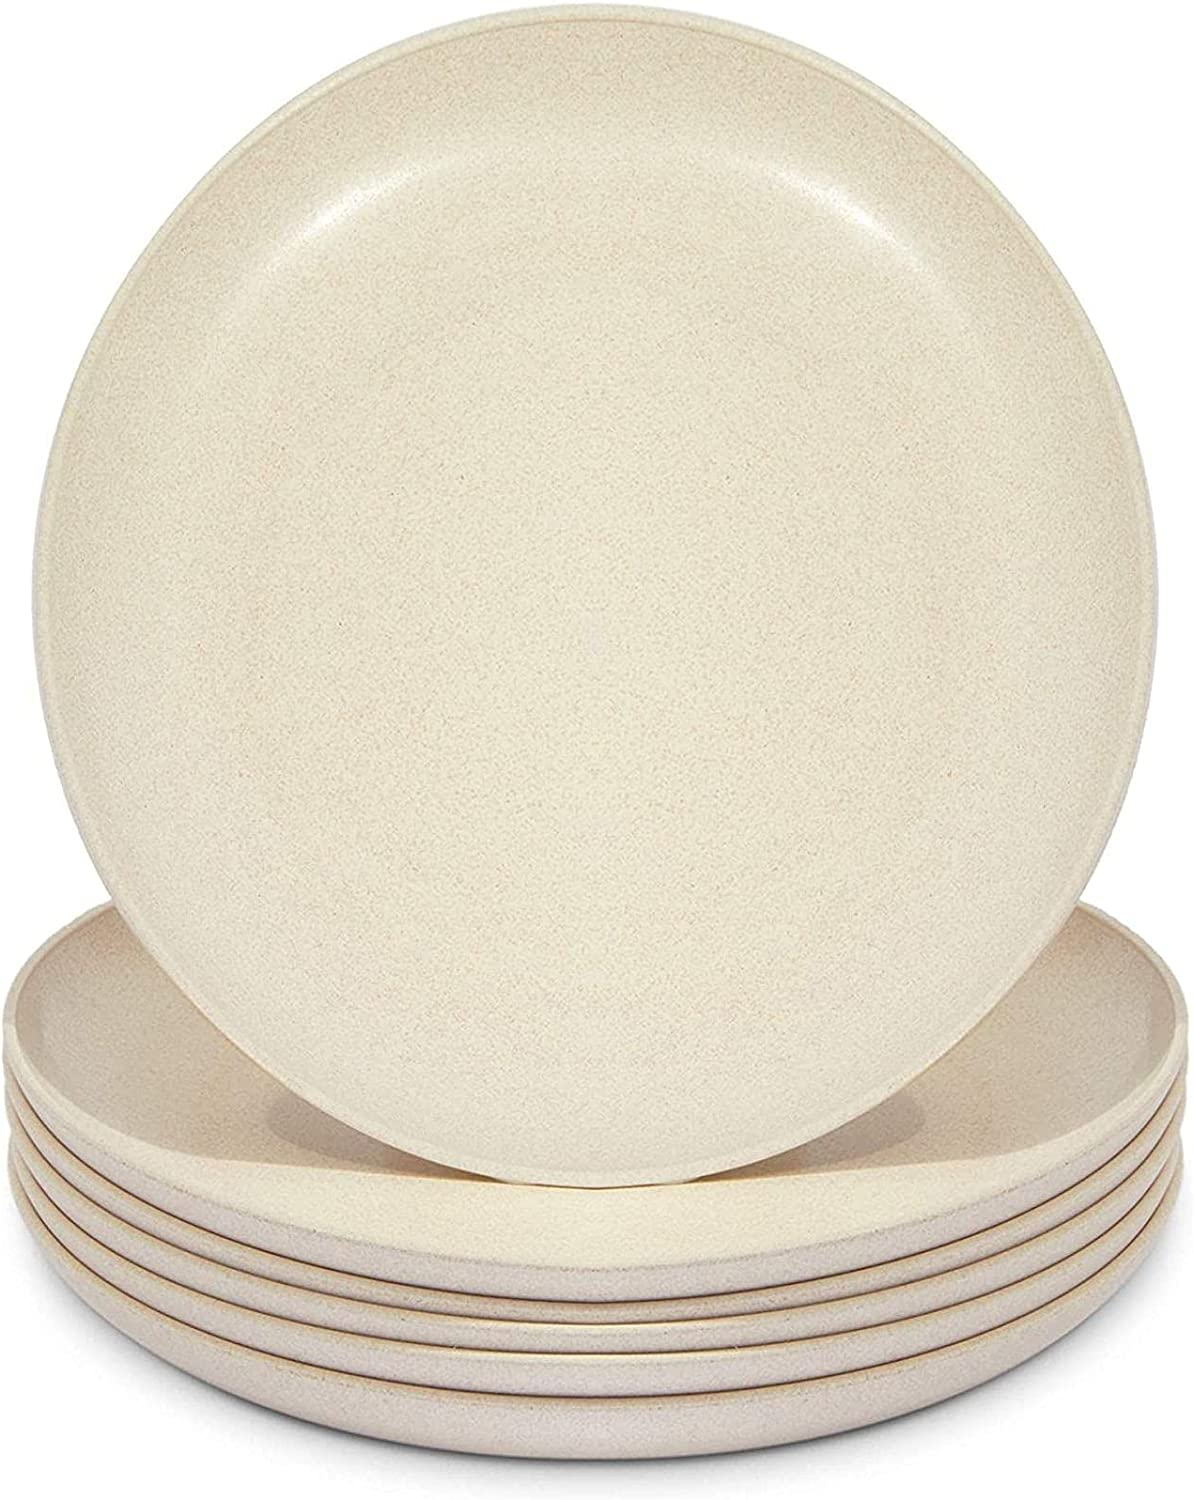 Wheat Straw Plates Unbreakable Dinner Plate 6 Beige Time sale Pac 8 In Super beauty product restock quality top